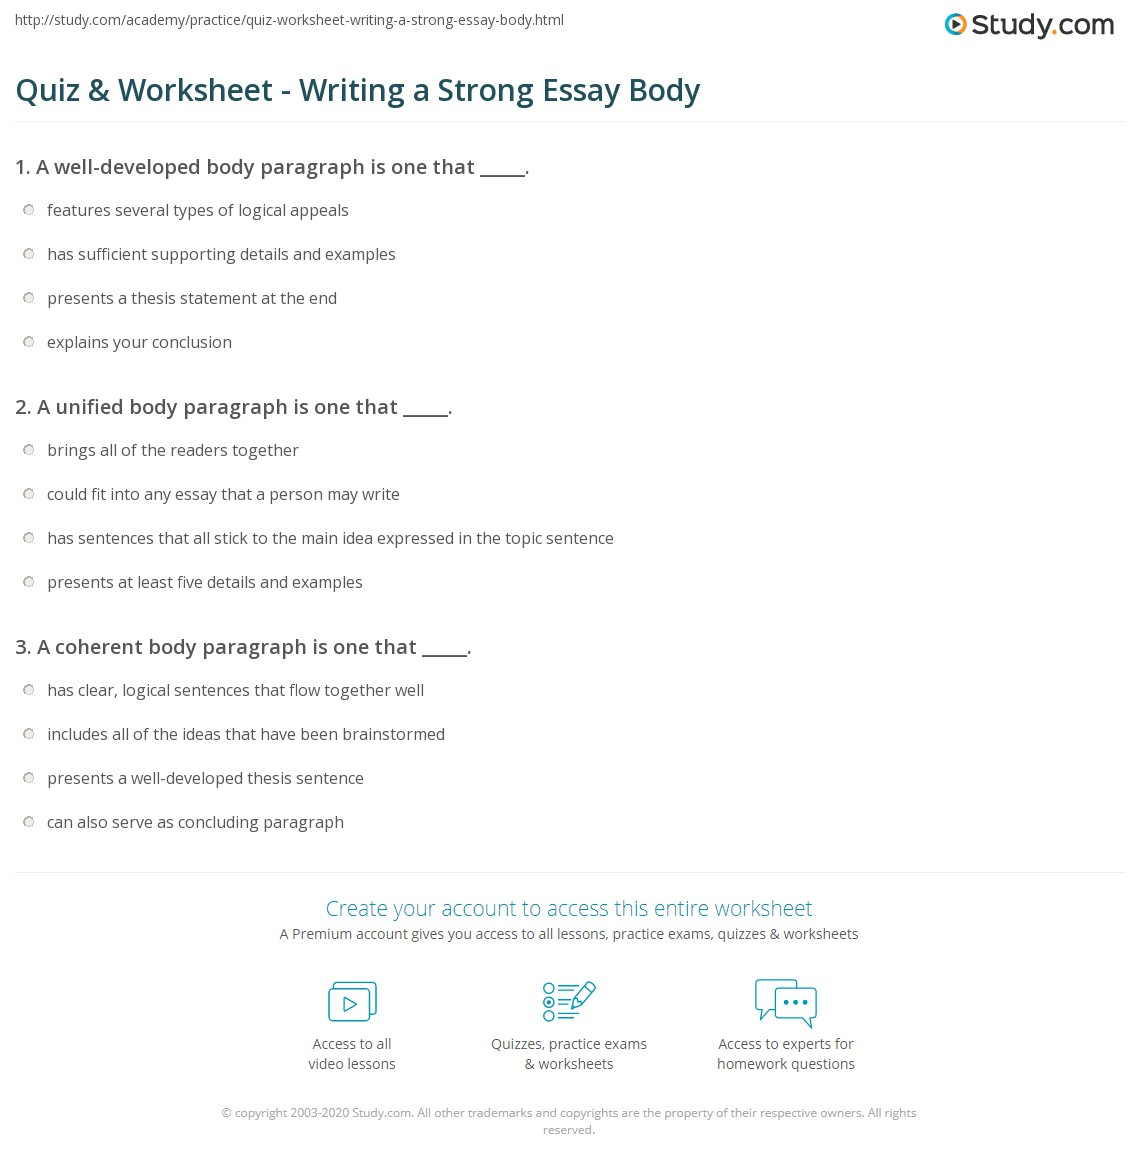 strong essay strong essay papi ip homeschool help for strong essay quiz amp worksheet writing a strong essay body study comprint how to write a strong essay